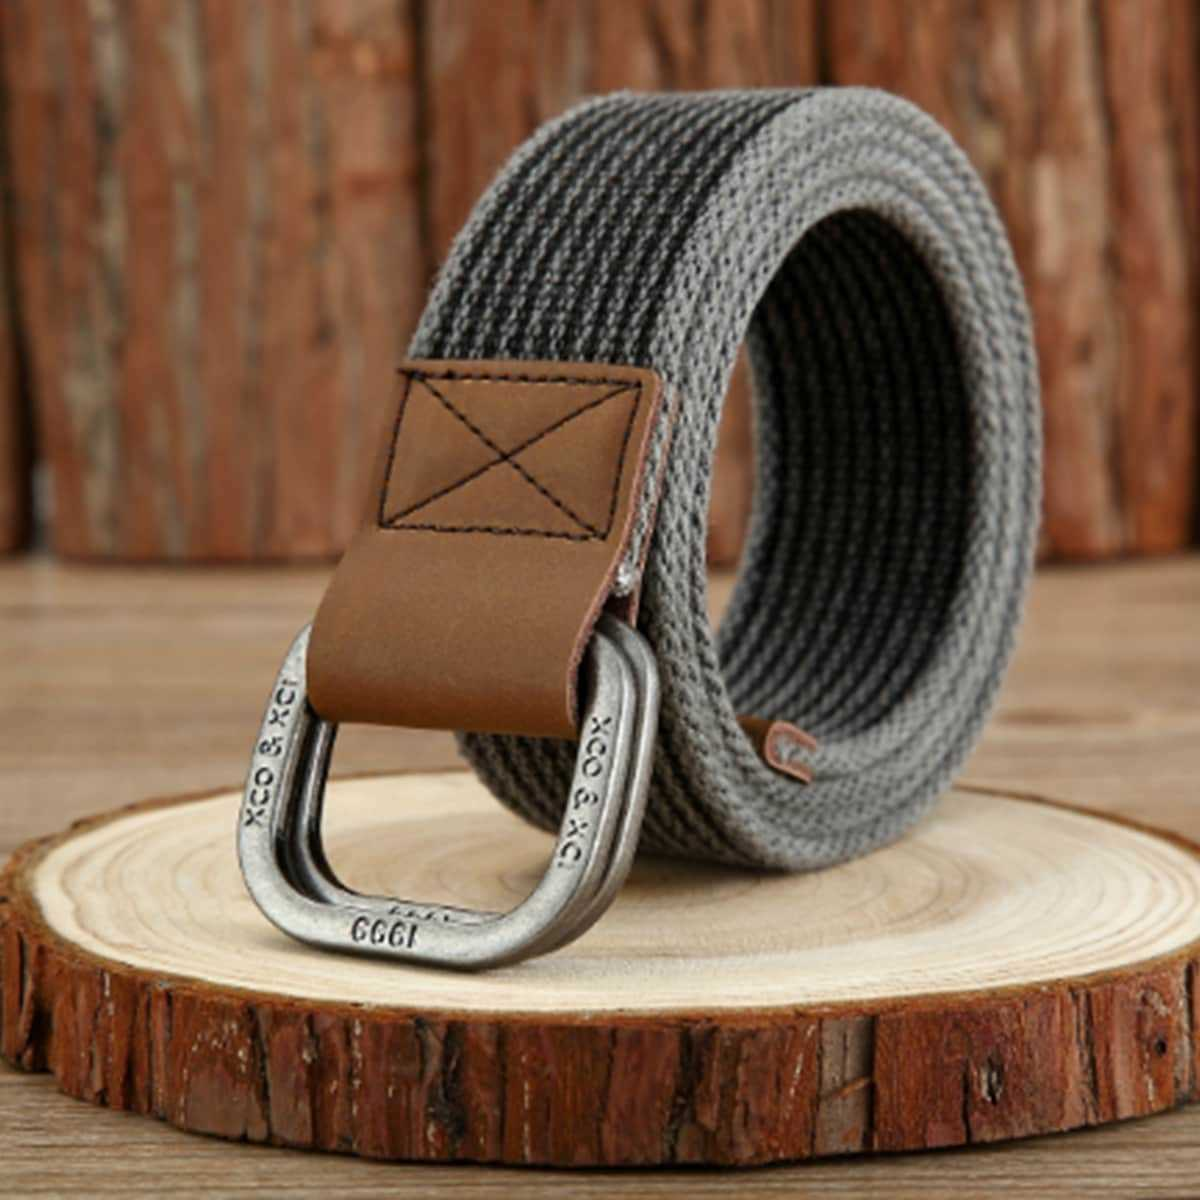 Guys Metal Buckle Canvas Belt in Army Green by ROMWE on GOOFASH